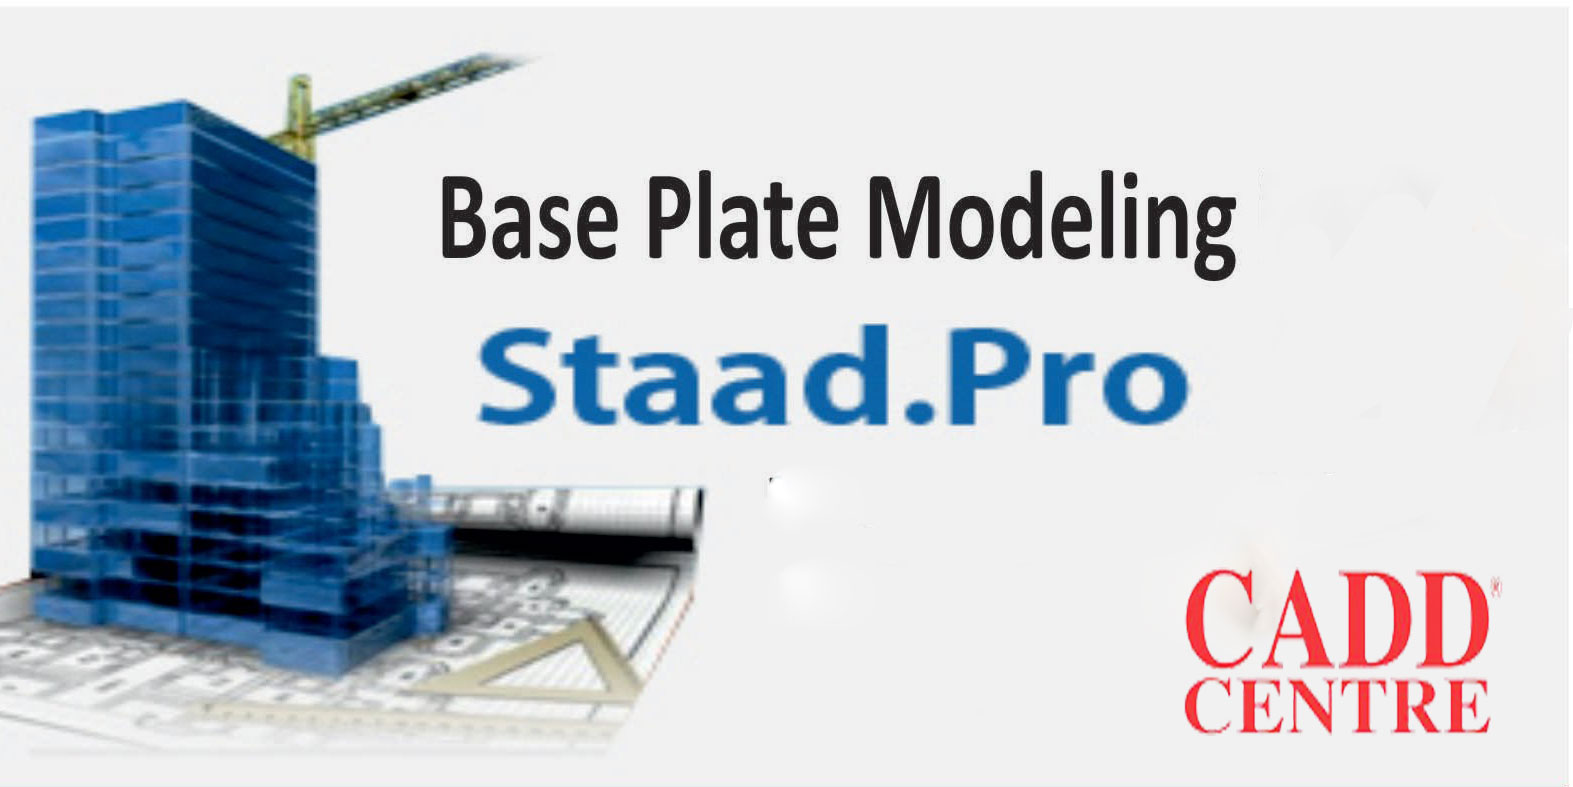 Cadd Centre Nandanvan: STAAD Pro Training Institutes In Nagpur